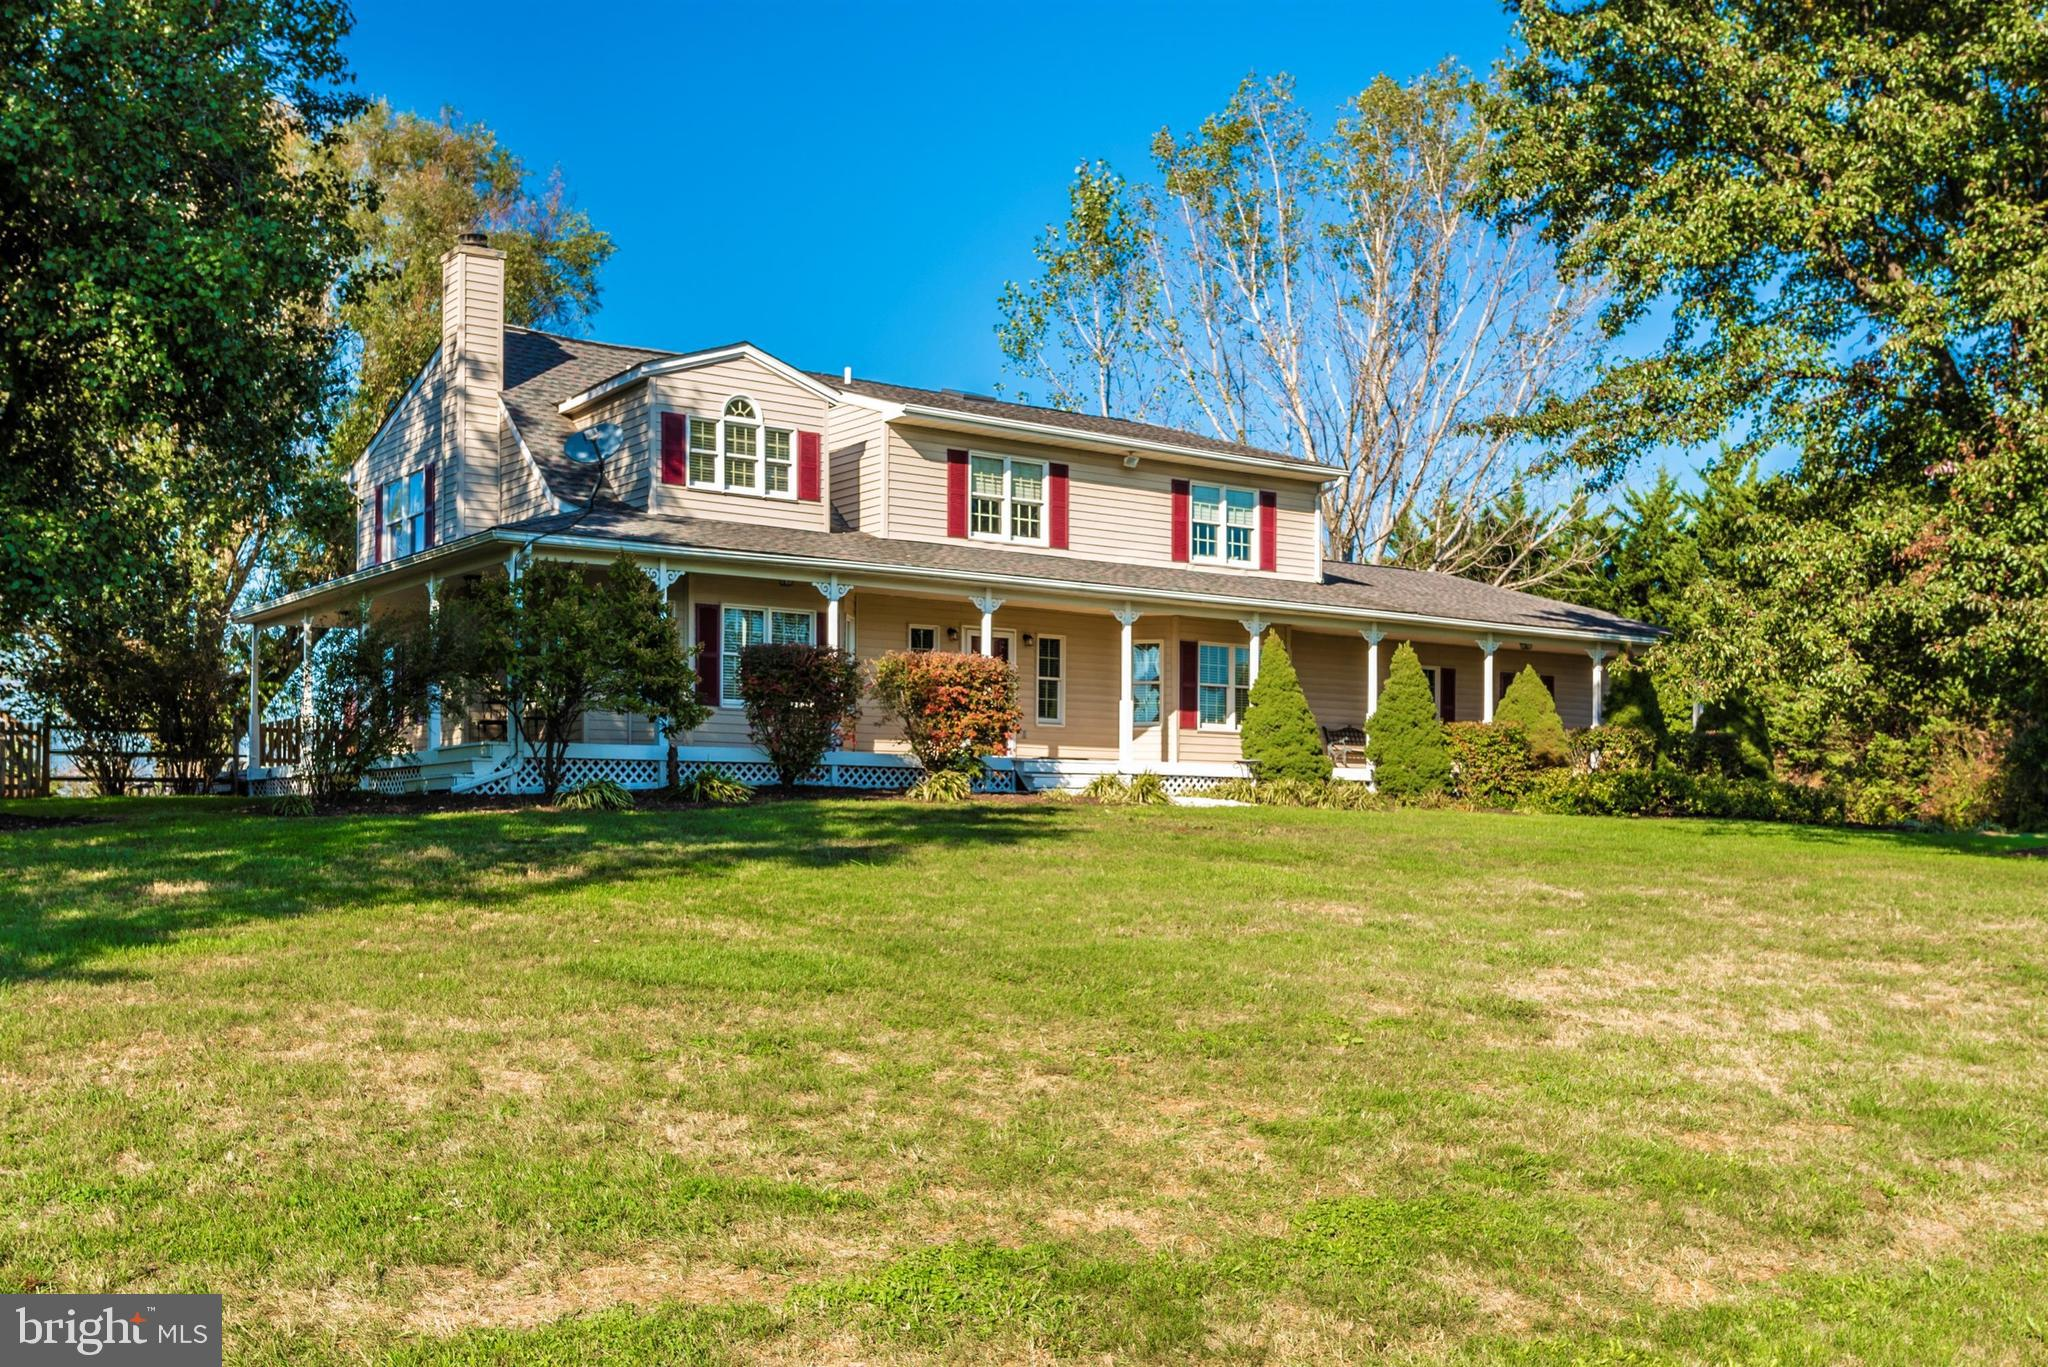 8416 GROSSNICKLE COURT, WALKERSVILLE, MD 21793